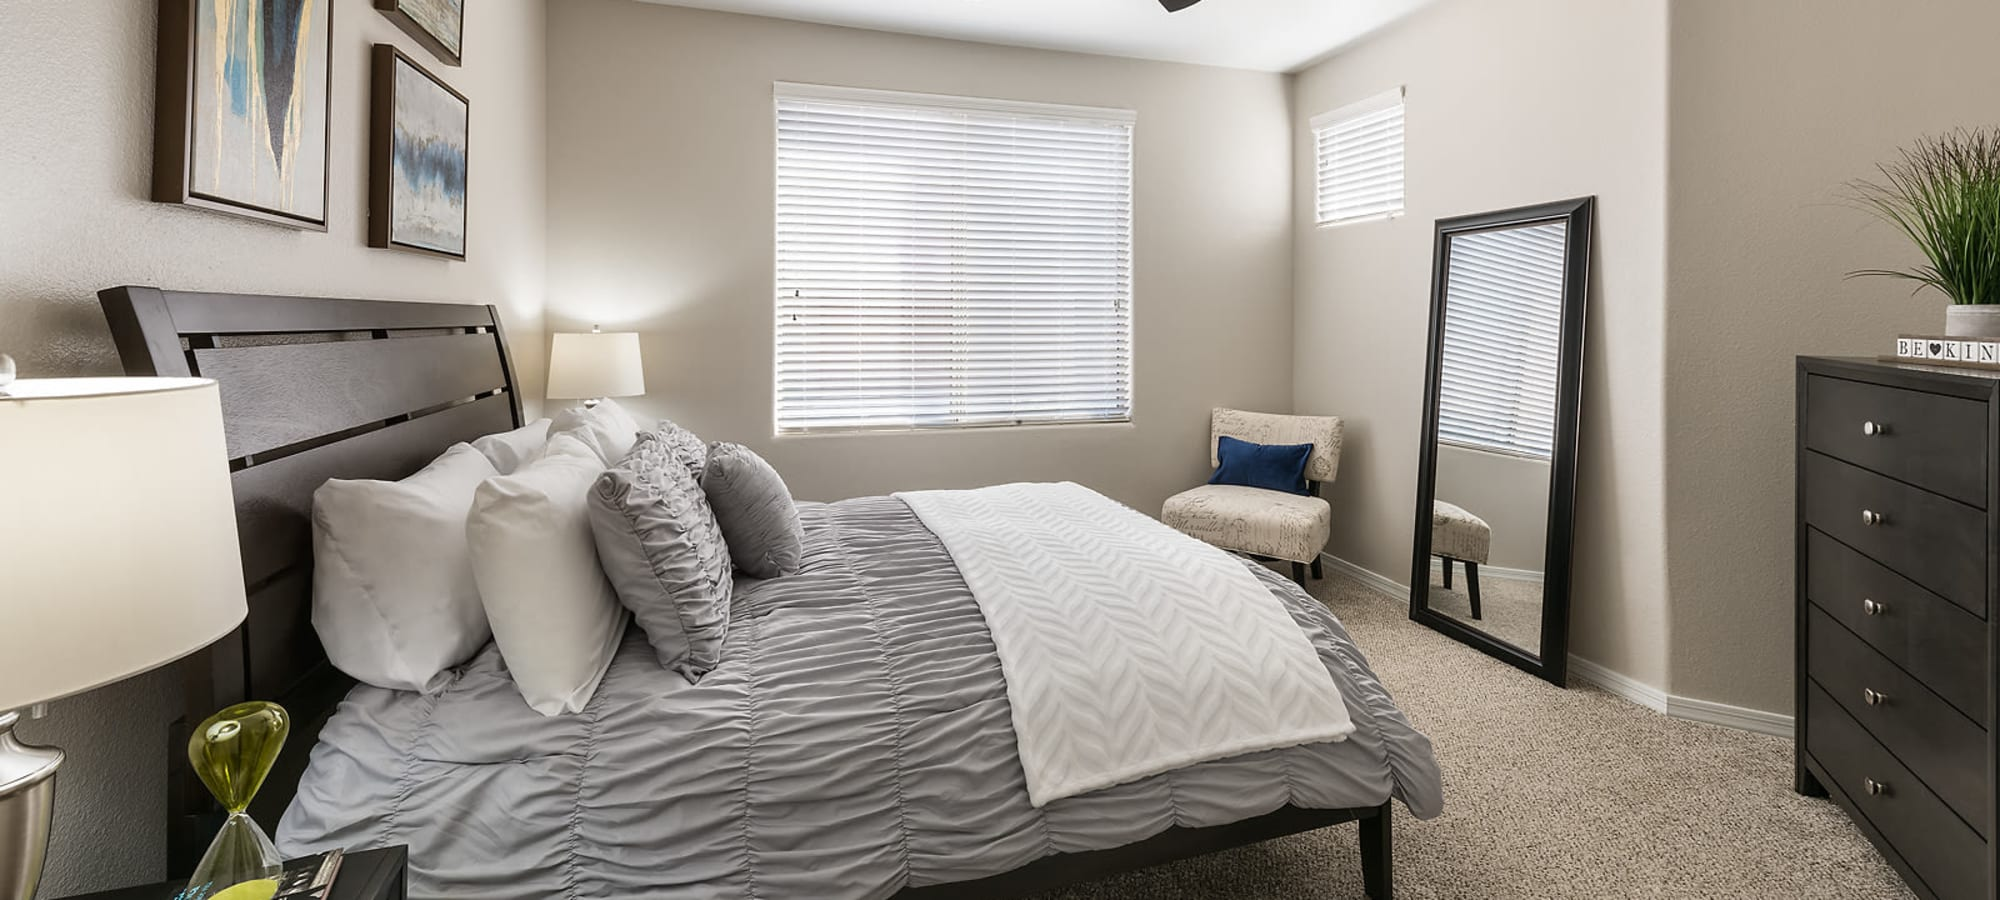 Spacious bedroom with ceiling fan at Laguna at Arrowhead Ranch in Glendale, Arizona